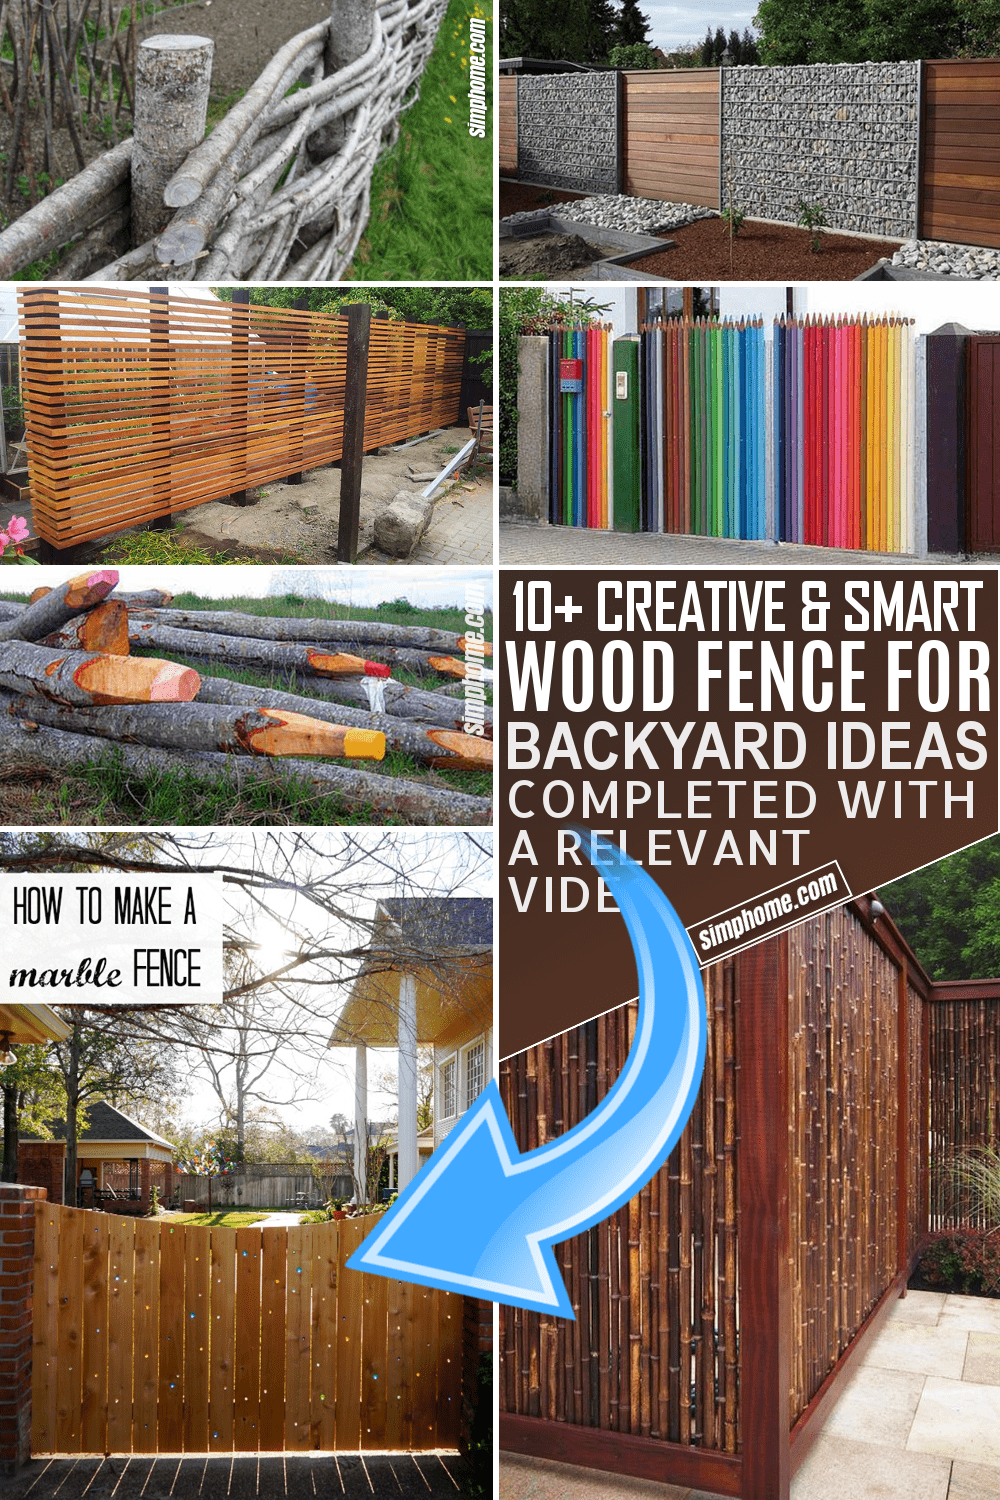 10 Wooden Fence for Backyard Ideas by Simphome.com